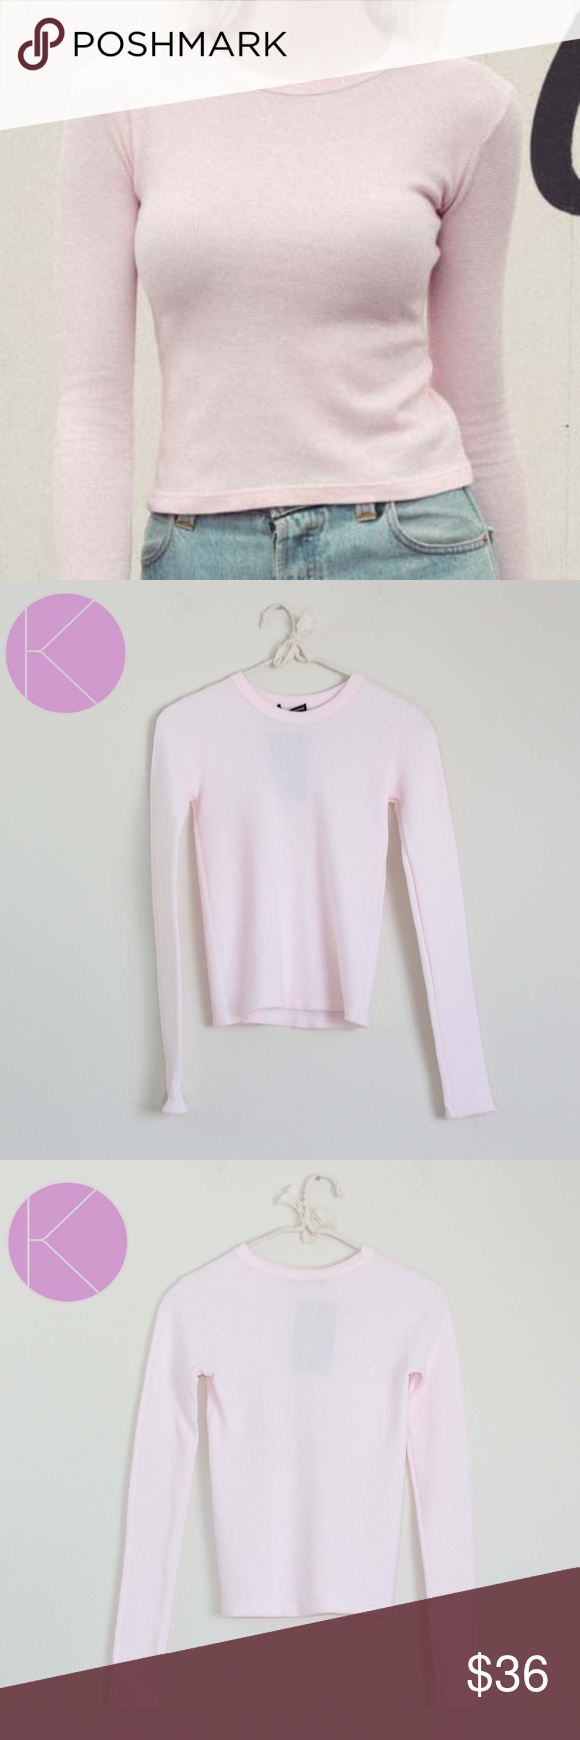 2f0b267d8cd4 NWT Brandy Melville Toya Thermal Long sleeve Top Brand new with tags.  Brandy Melville Toya thermal top. Light pink color. Crop top. Long Sleeve.  Crew neck.